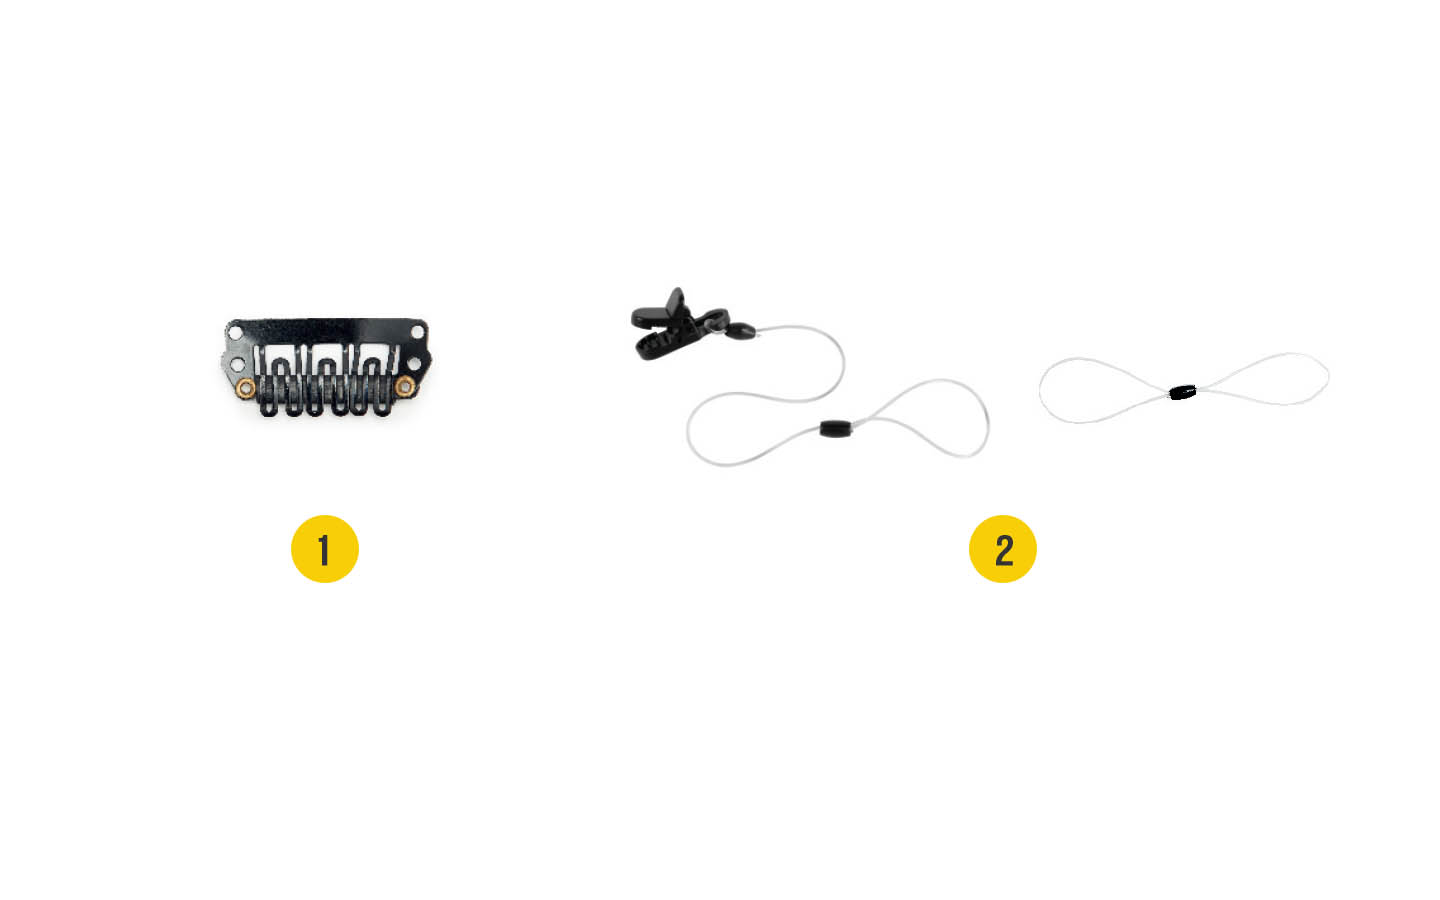 Image of the accessories for the Nucleus Kanso Sound Processor: 1. Alligator Clip with long safety line, 2. Hair Clip with short safety line